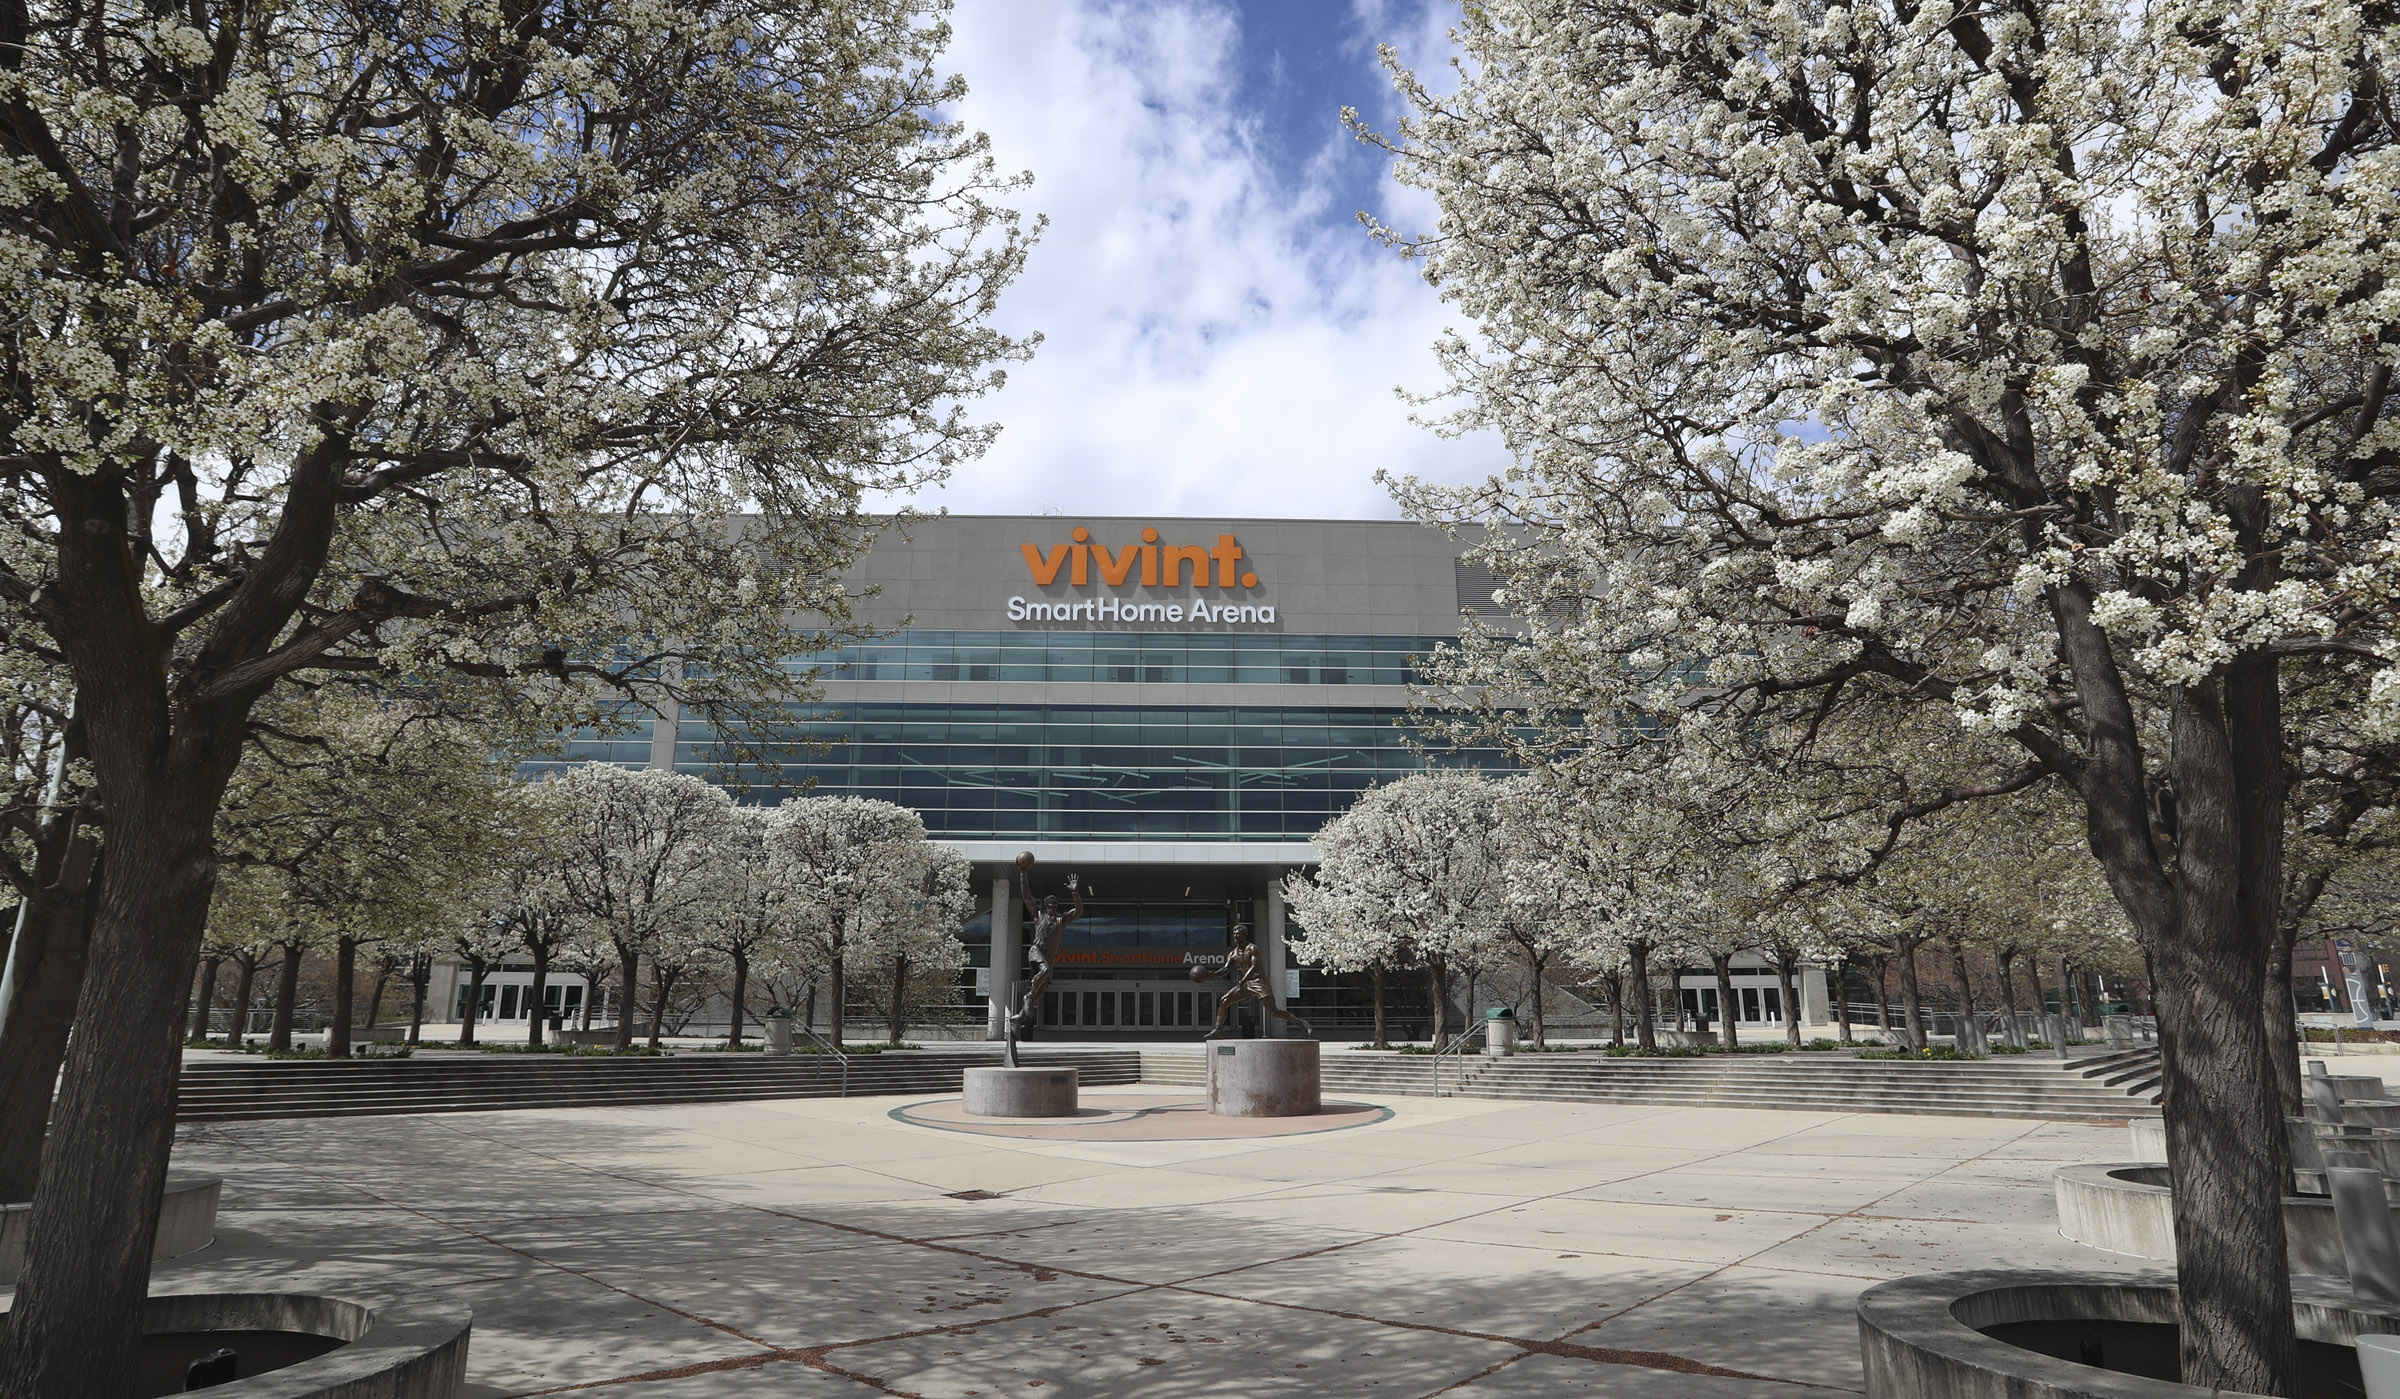 Vivint Smart Home Arena in Salt Lake City is pictured on March 31, 2020.